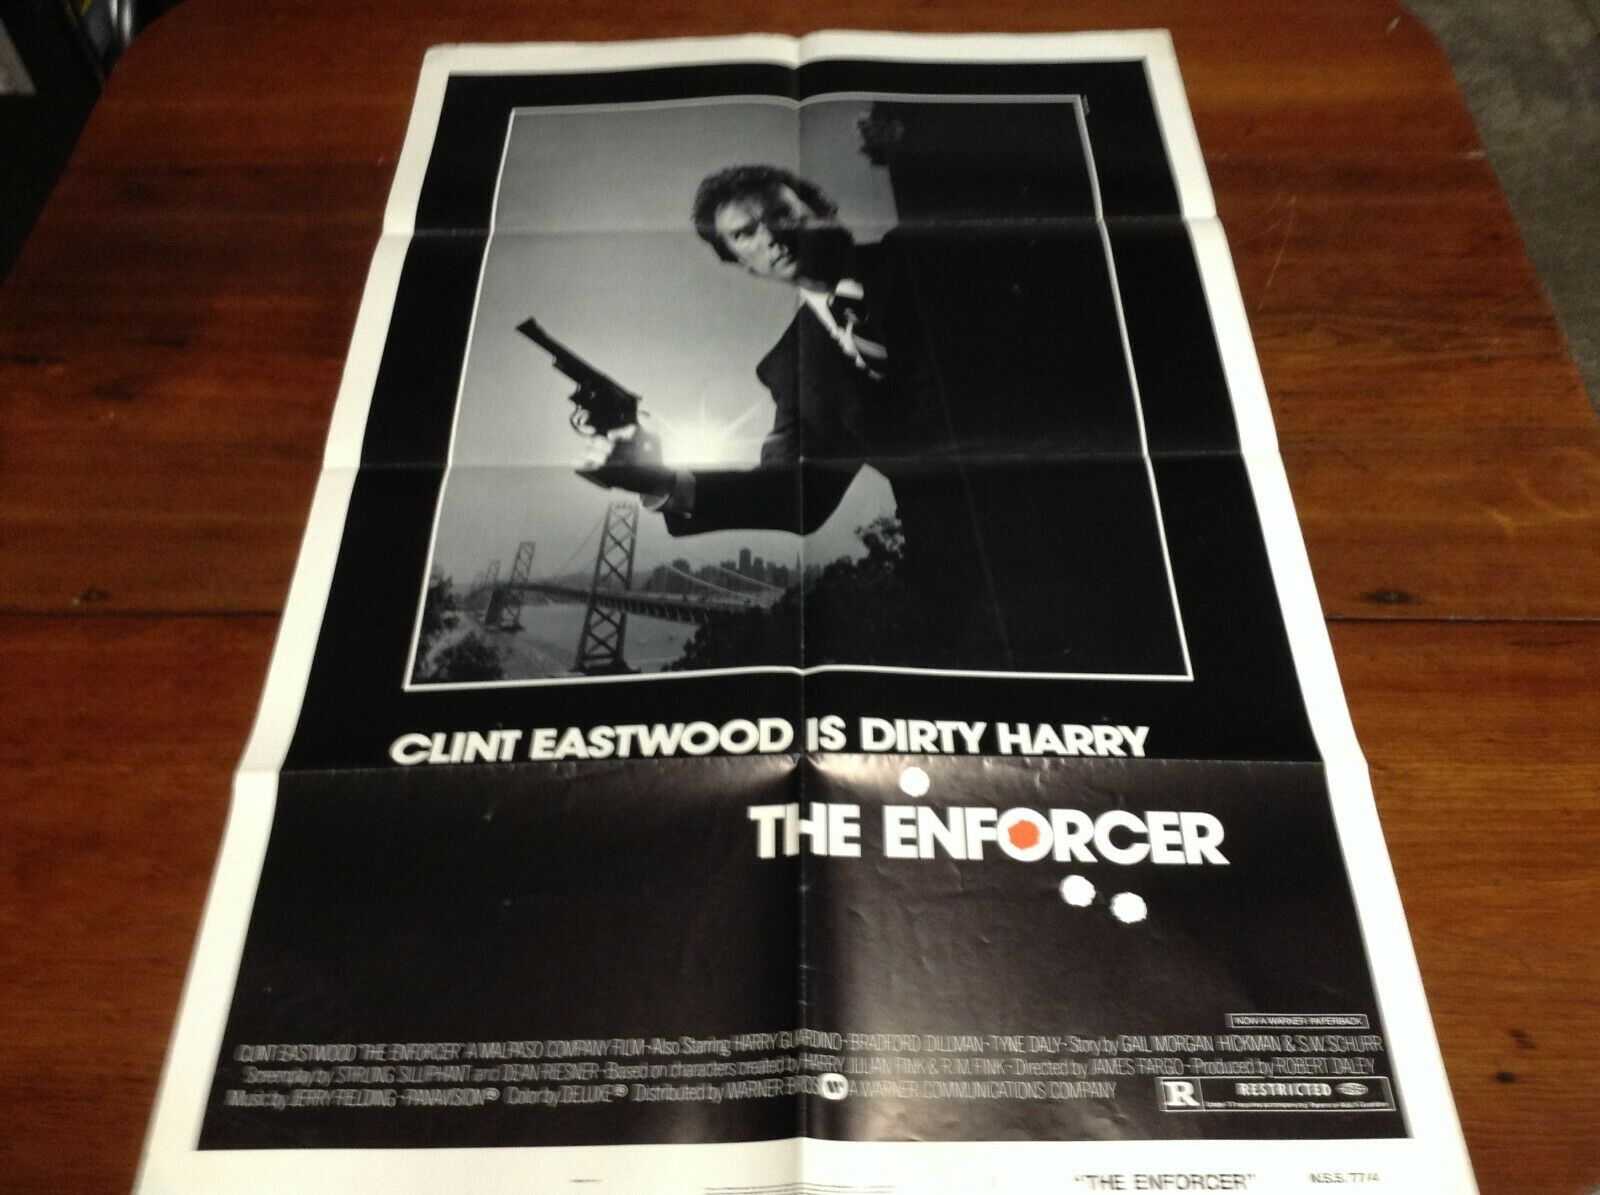 The Enforcer Original 1 Sheet Movie Poster 27 X 41 Folded - $75.00